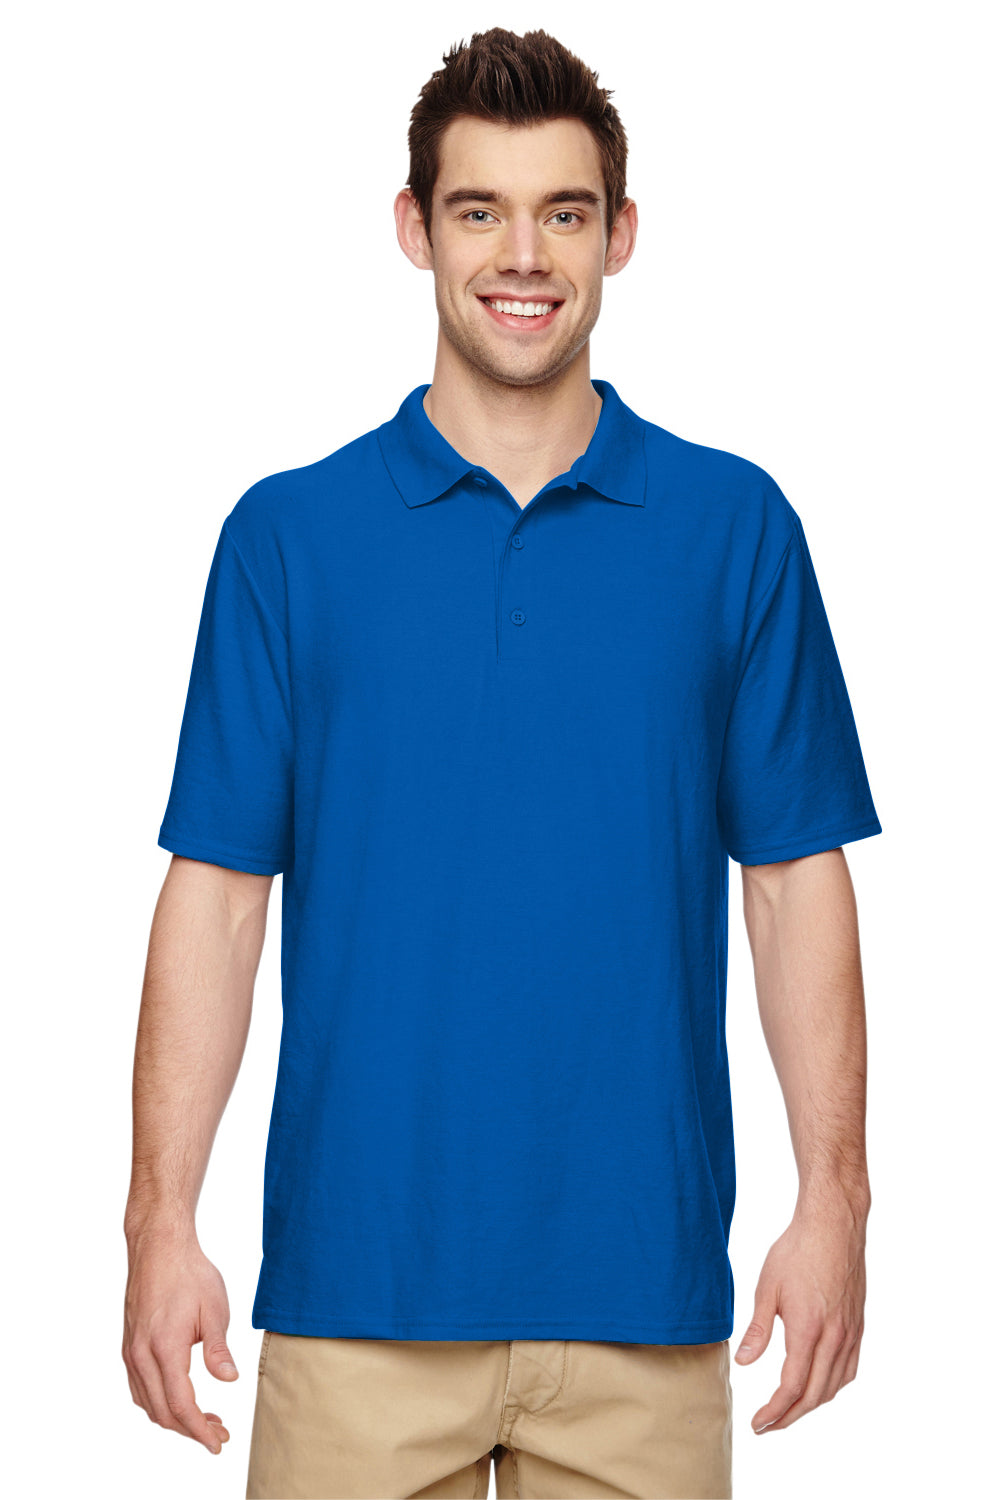 Gildan G728 Mens DryBlend Moisture Wicking Short Sleeve Polo Shirt Royal Blue Front